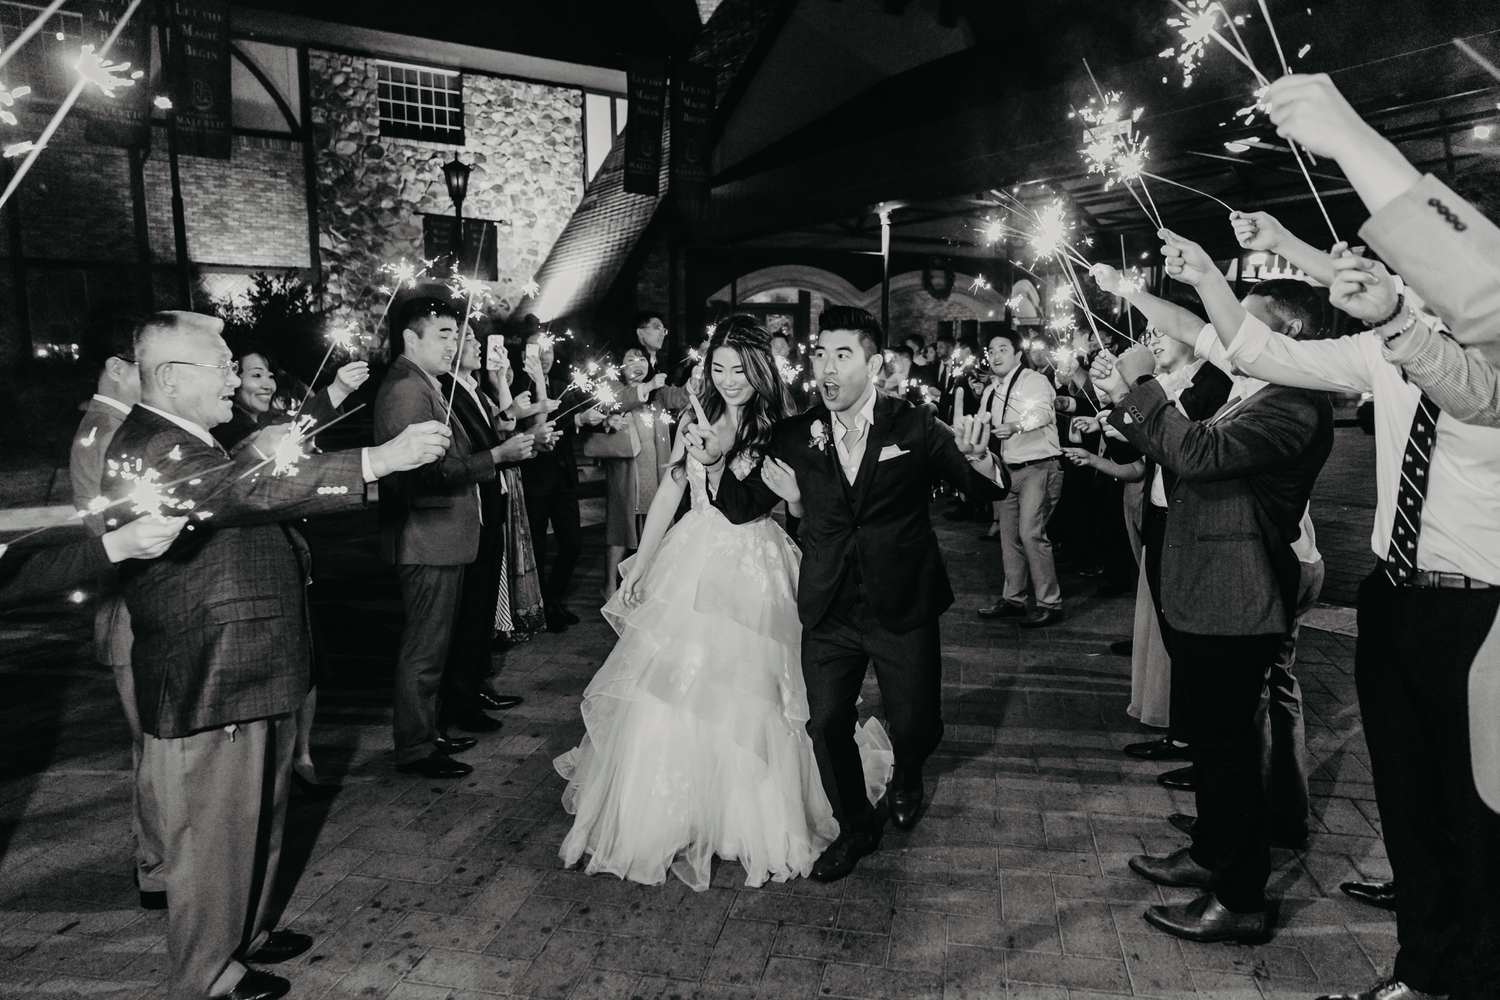 wedding photographer Anaheim, Orange County, la, oc, wedding, photographer, photo, sparkler exit, happy, whoo